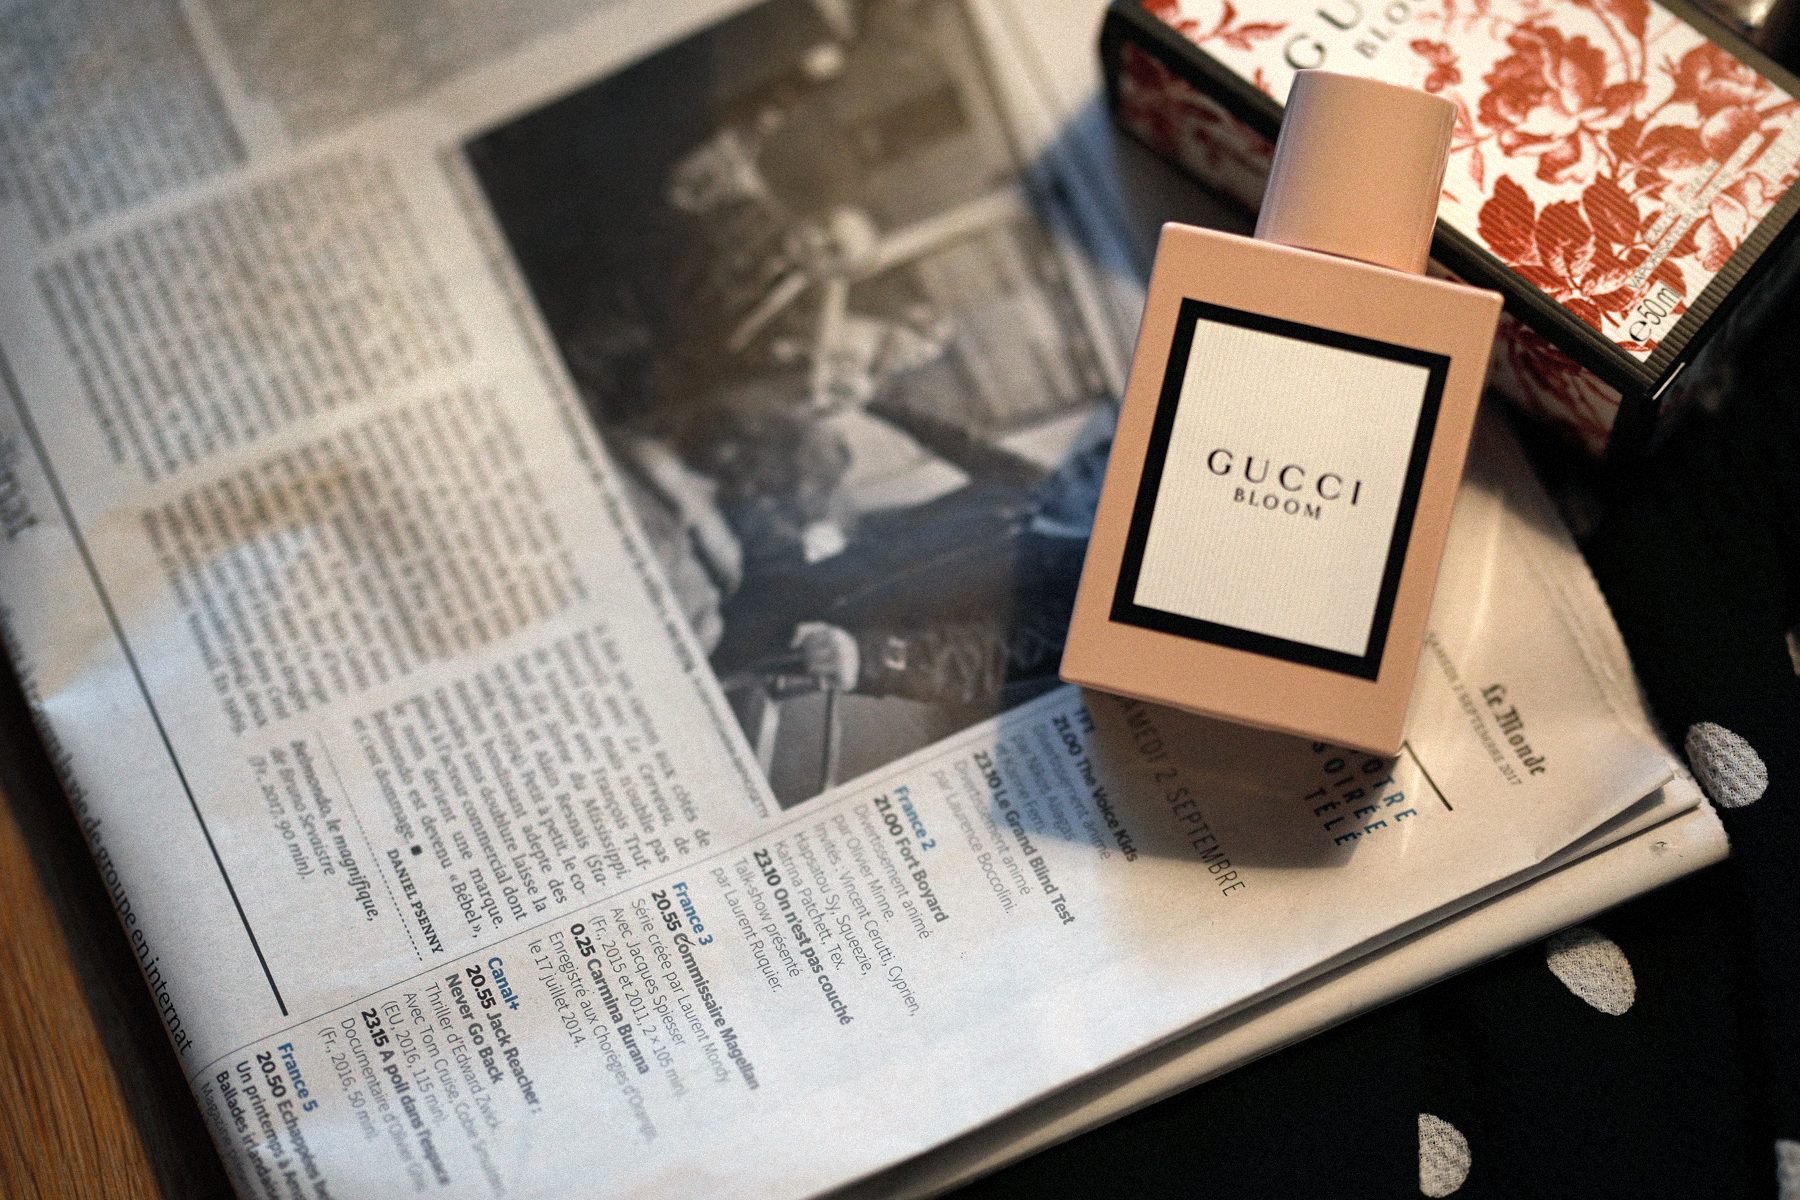 beauty favourites blogpost november paula's choice c15 booster givenchy guerlain gucci bloom fragrance perfume moody home happiness photography cats & dogs beautyblog ricarda schernus max bechmann fotografie film düsseldorf 3